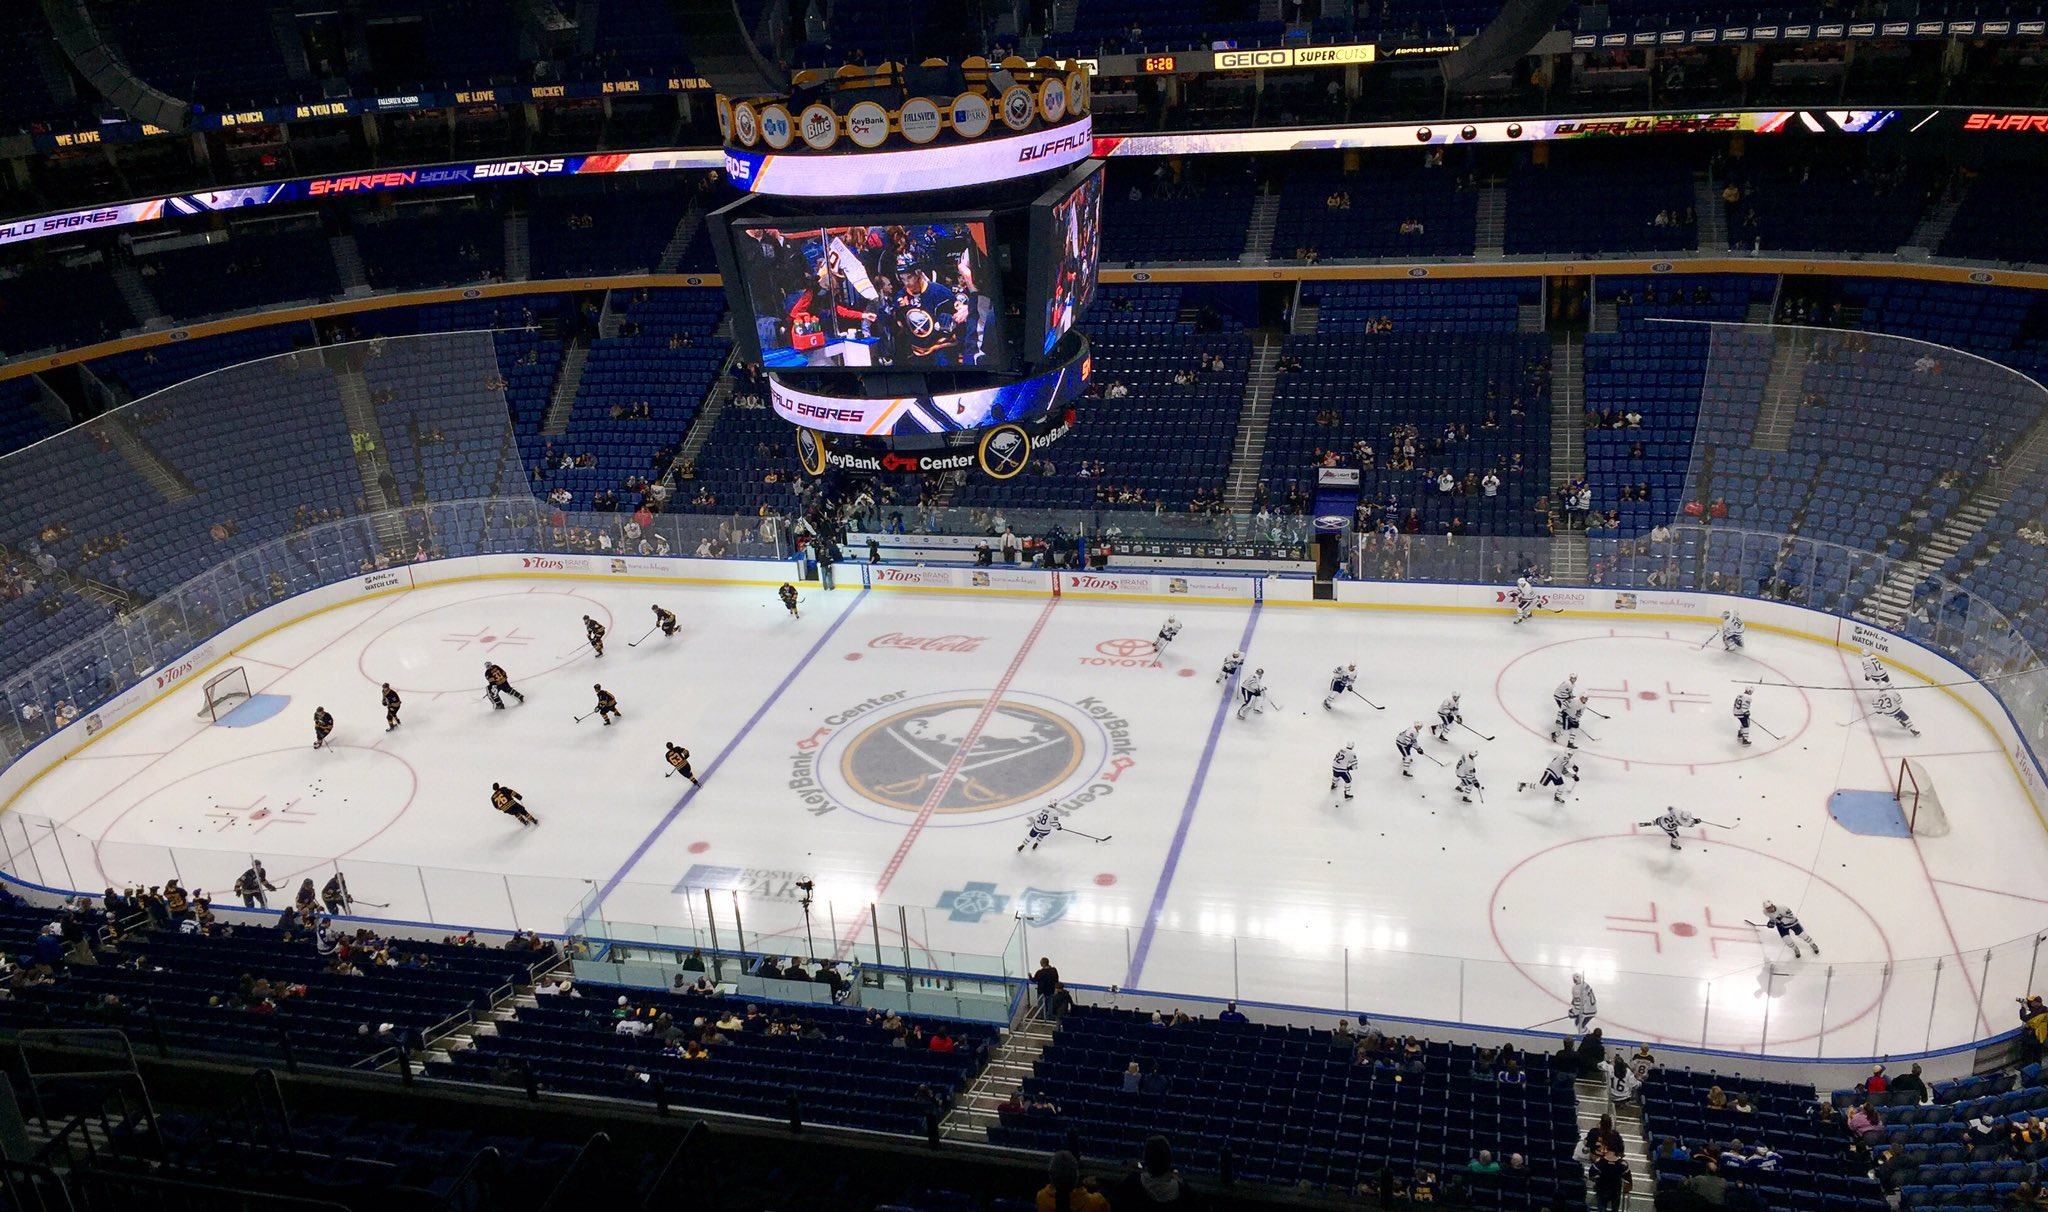 The Sabres and Maple Leafs were tied during the pregame skate. Toronto quickly took control.